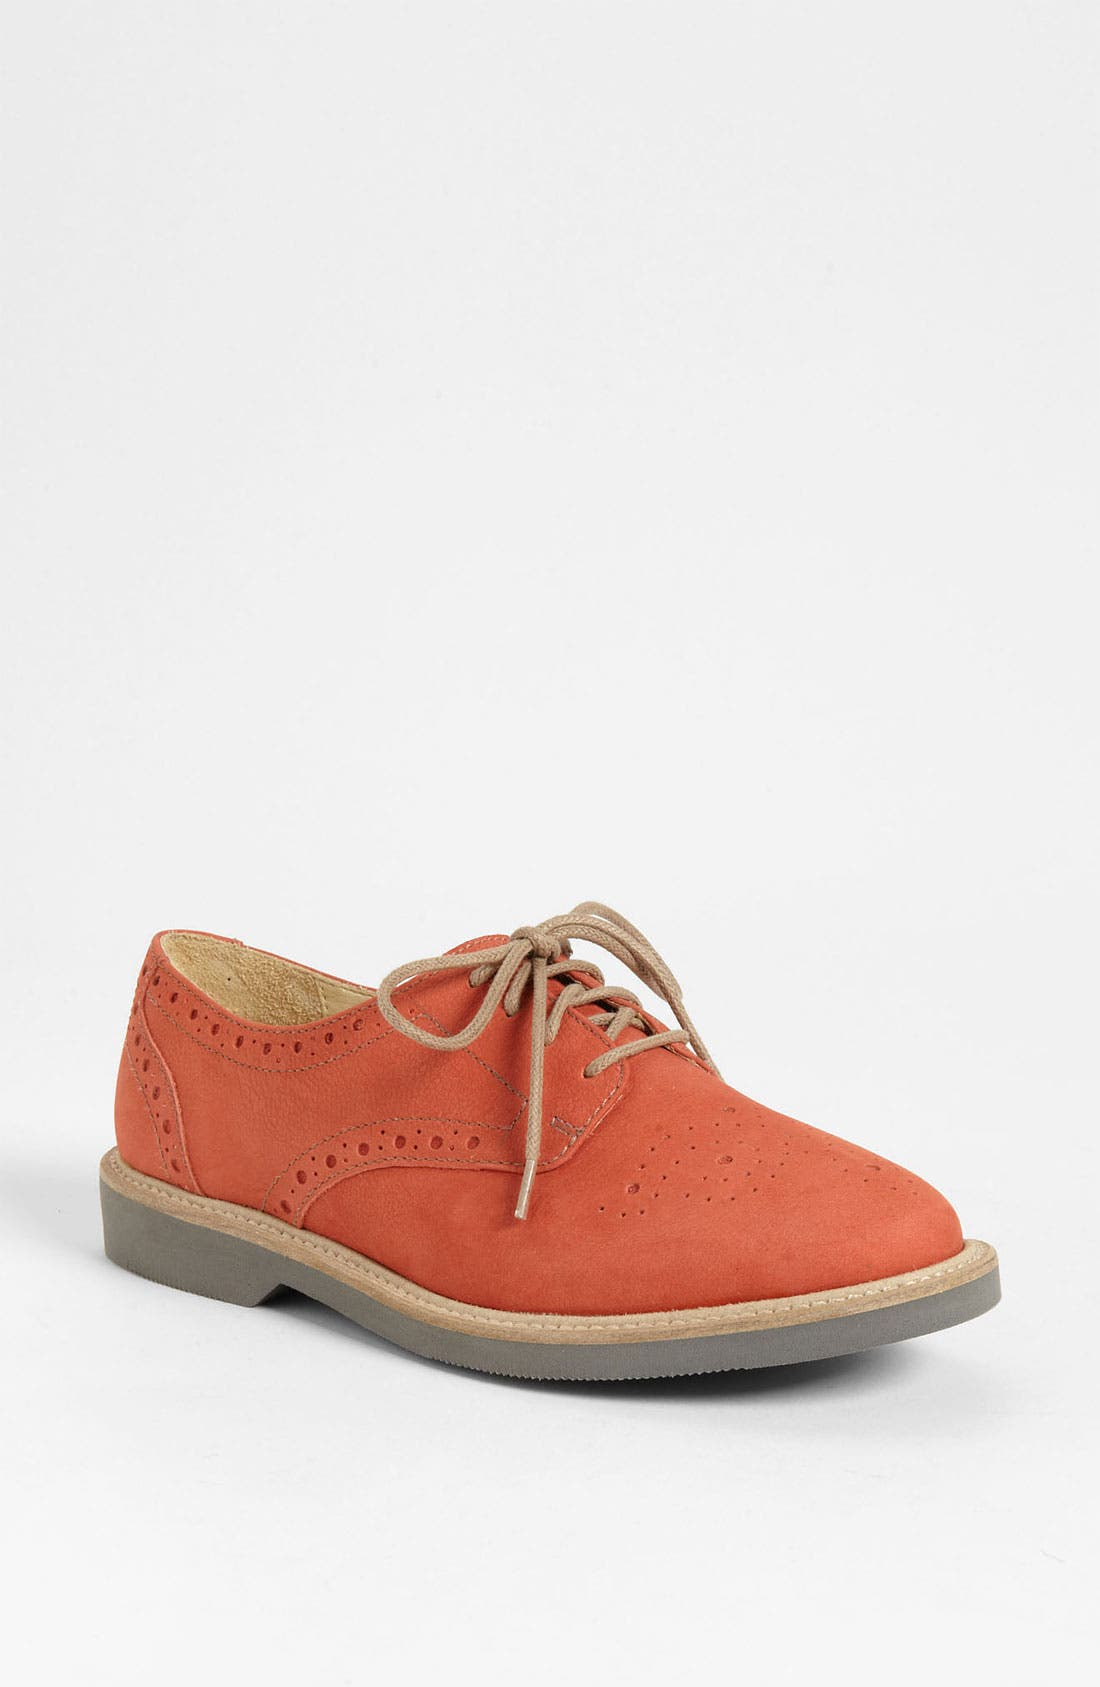 Main Image - HALOGEN LINDY OXFORD